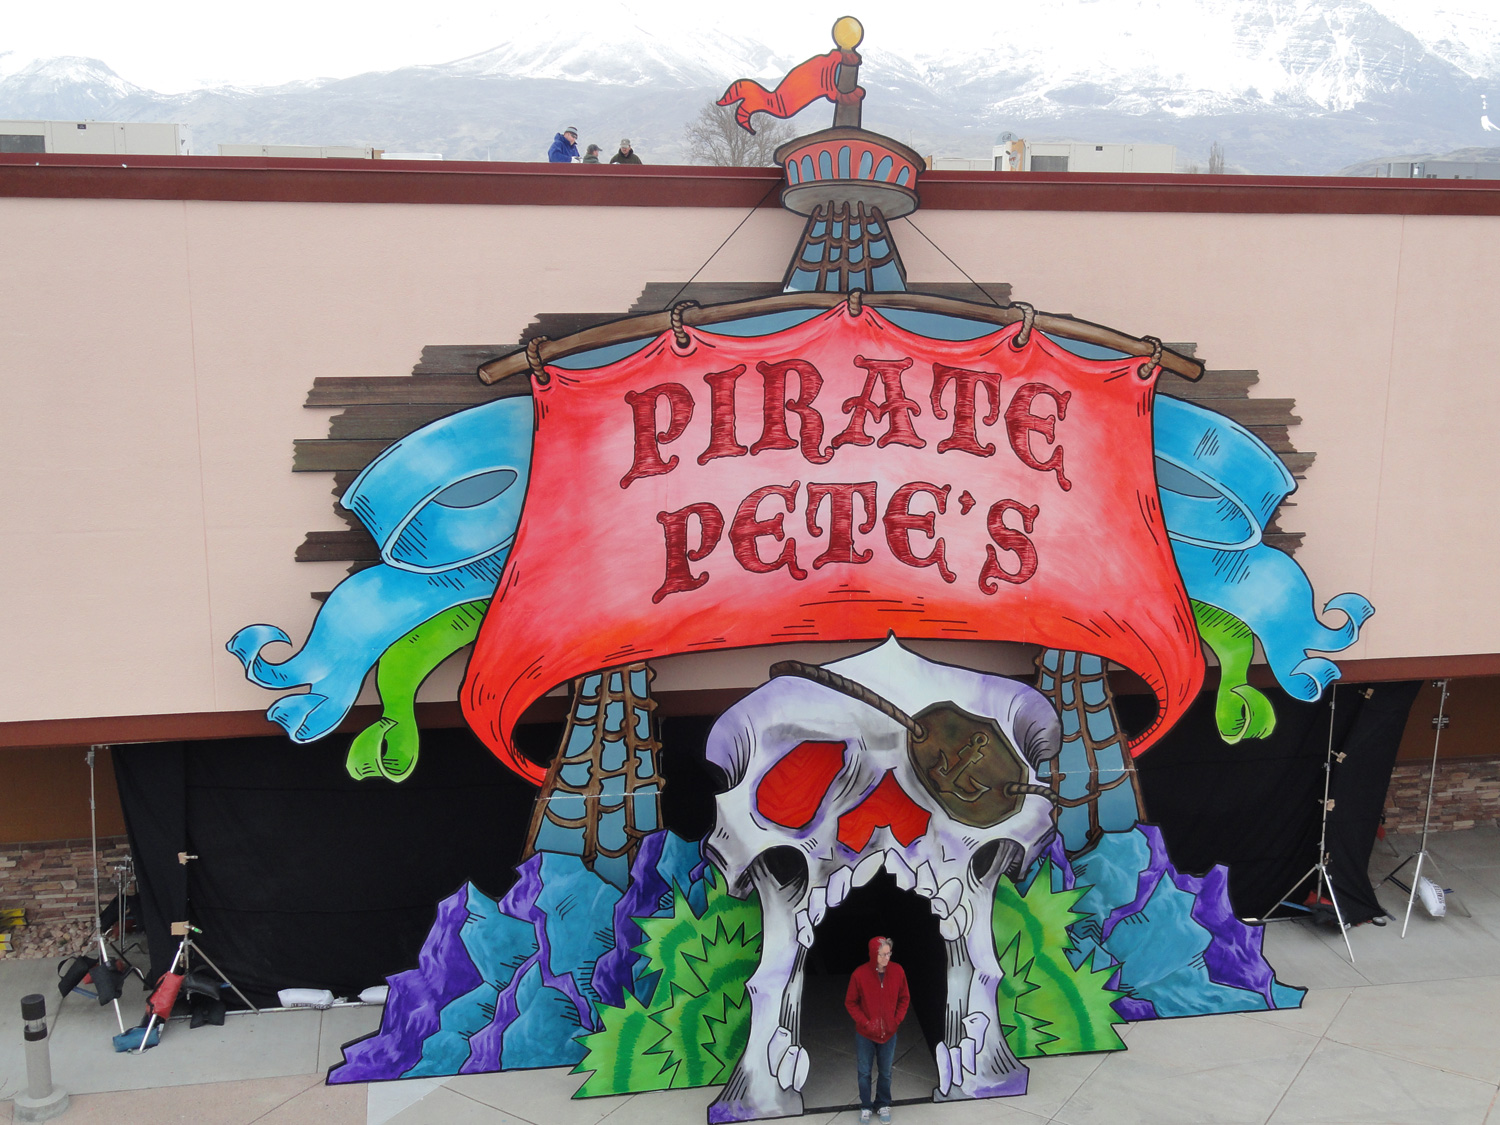 Entrance to a pirate-themed Vegas-style buffet.